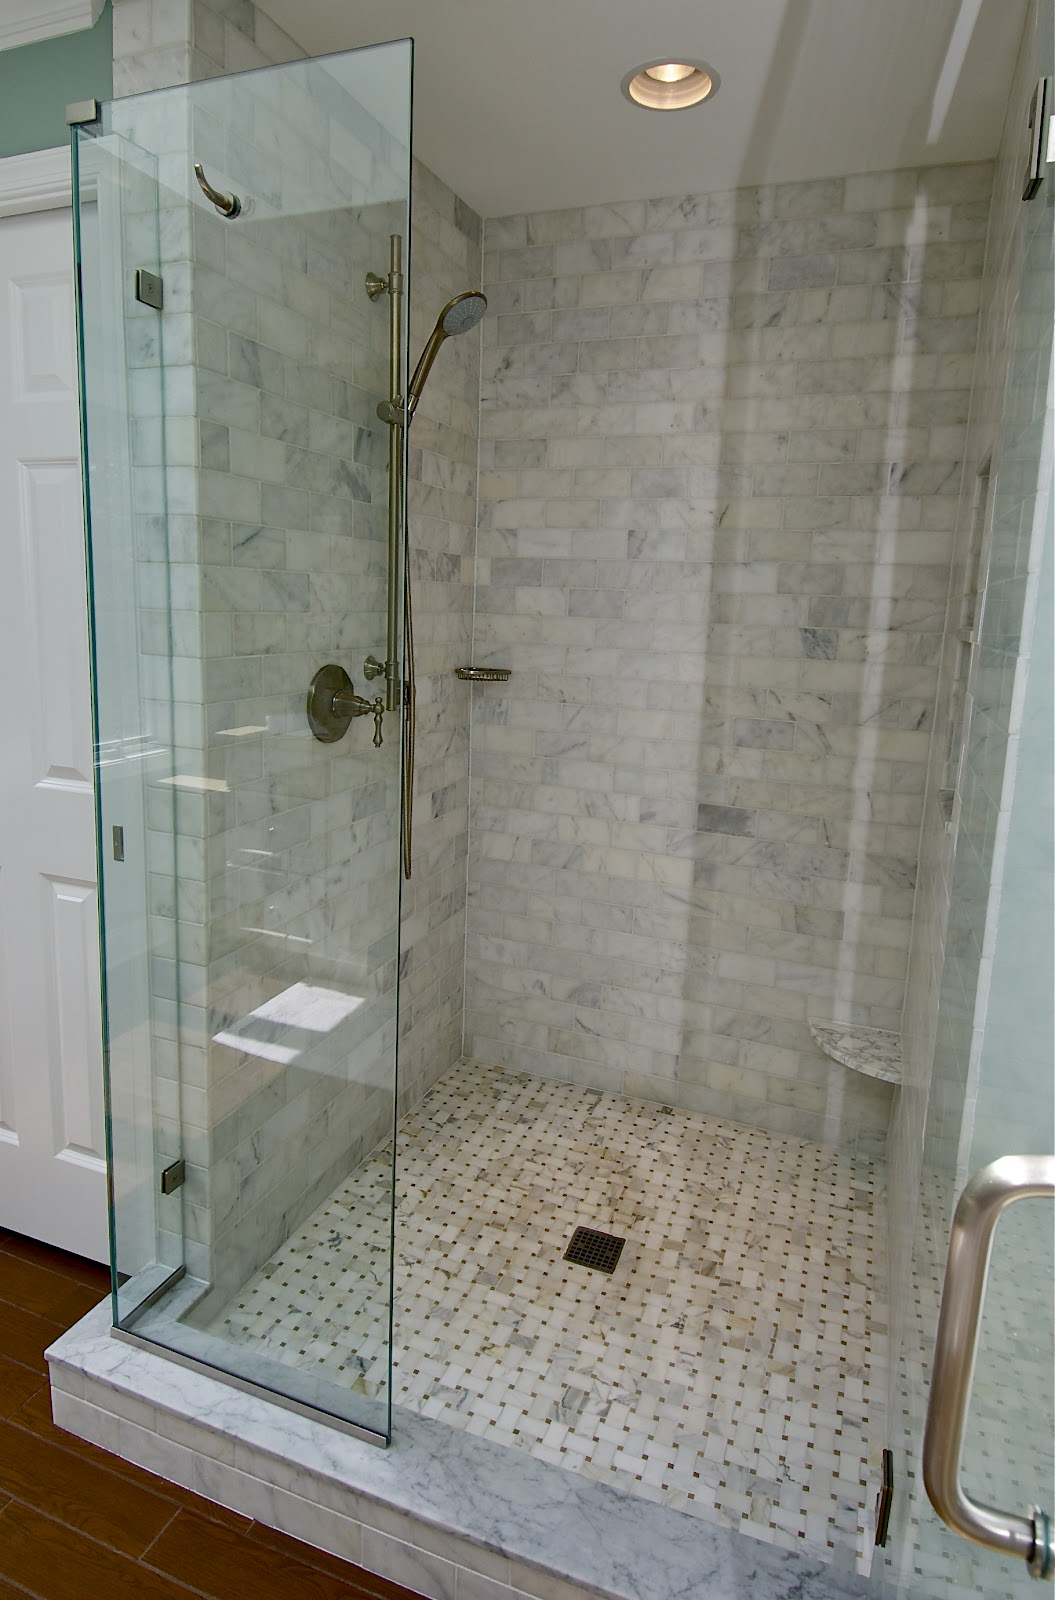 Marble subway tile shower offering the sense of elegance homesfeed - Bathroom shower ideas ...